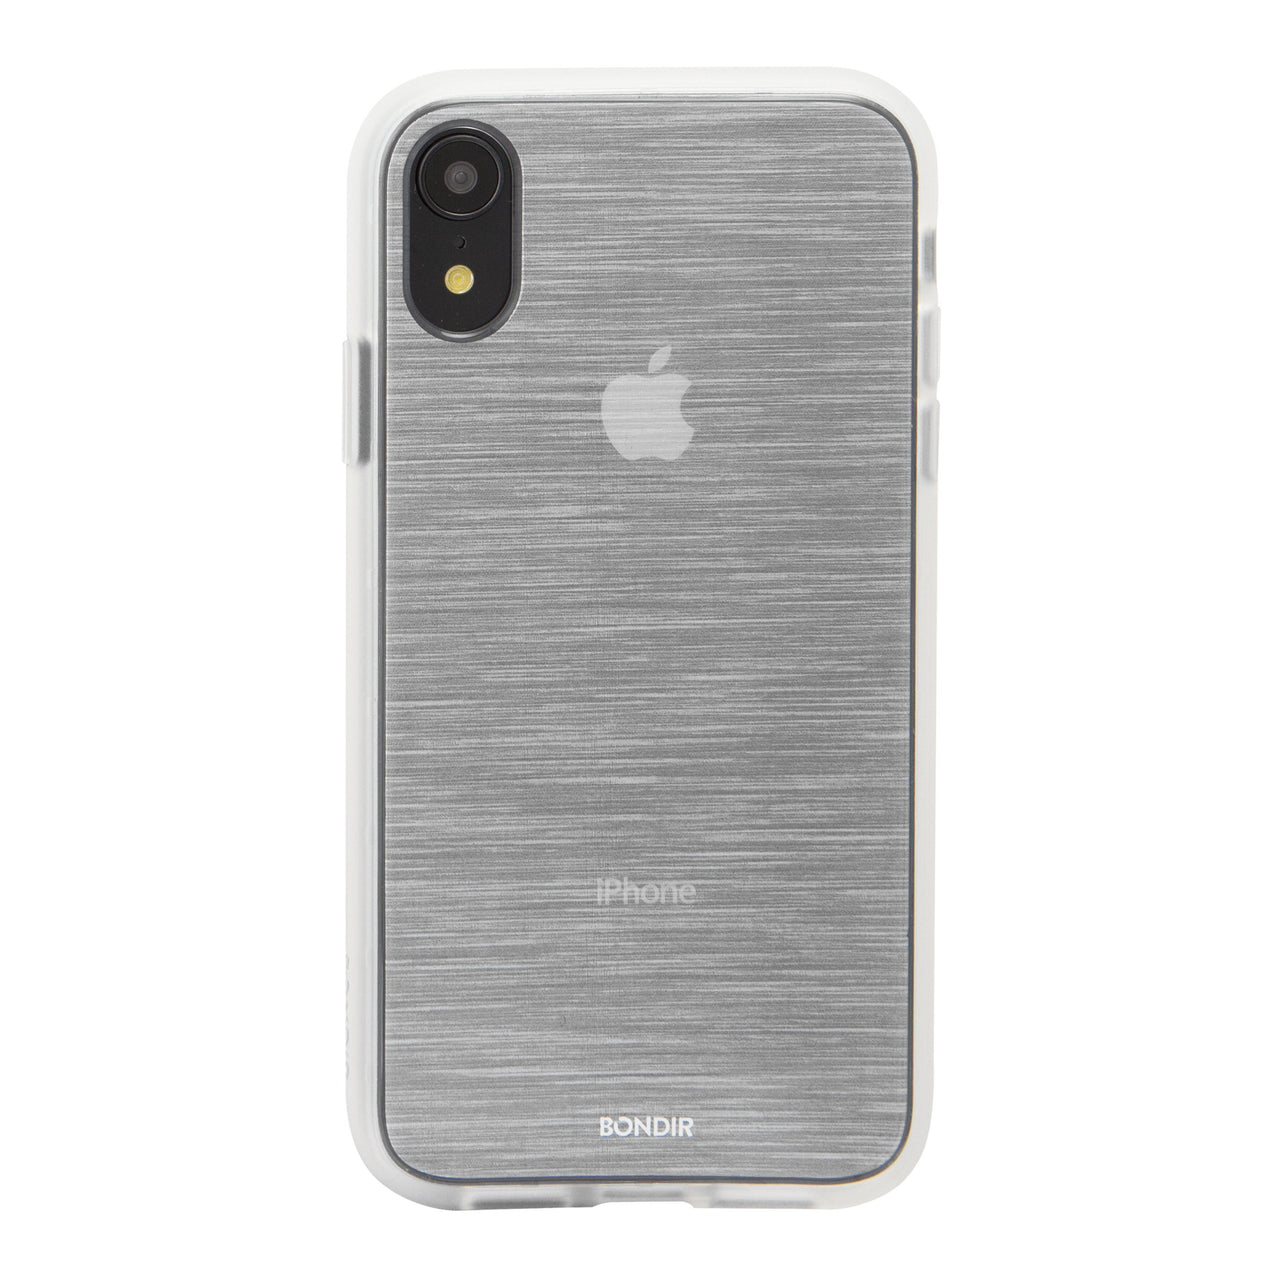 Case - Mist (Silver) Case, IPhone XR